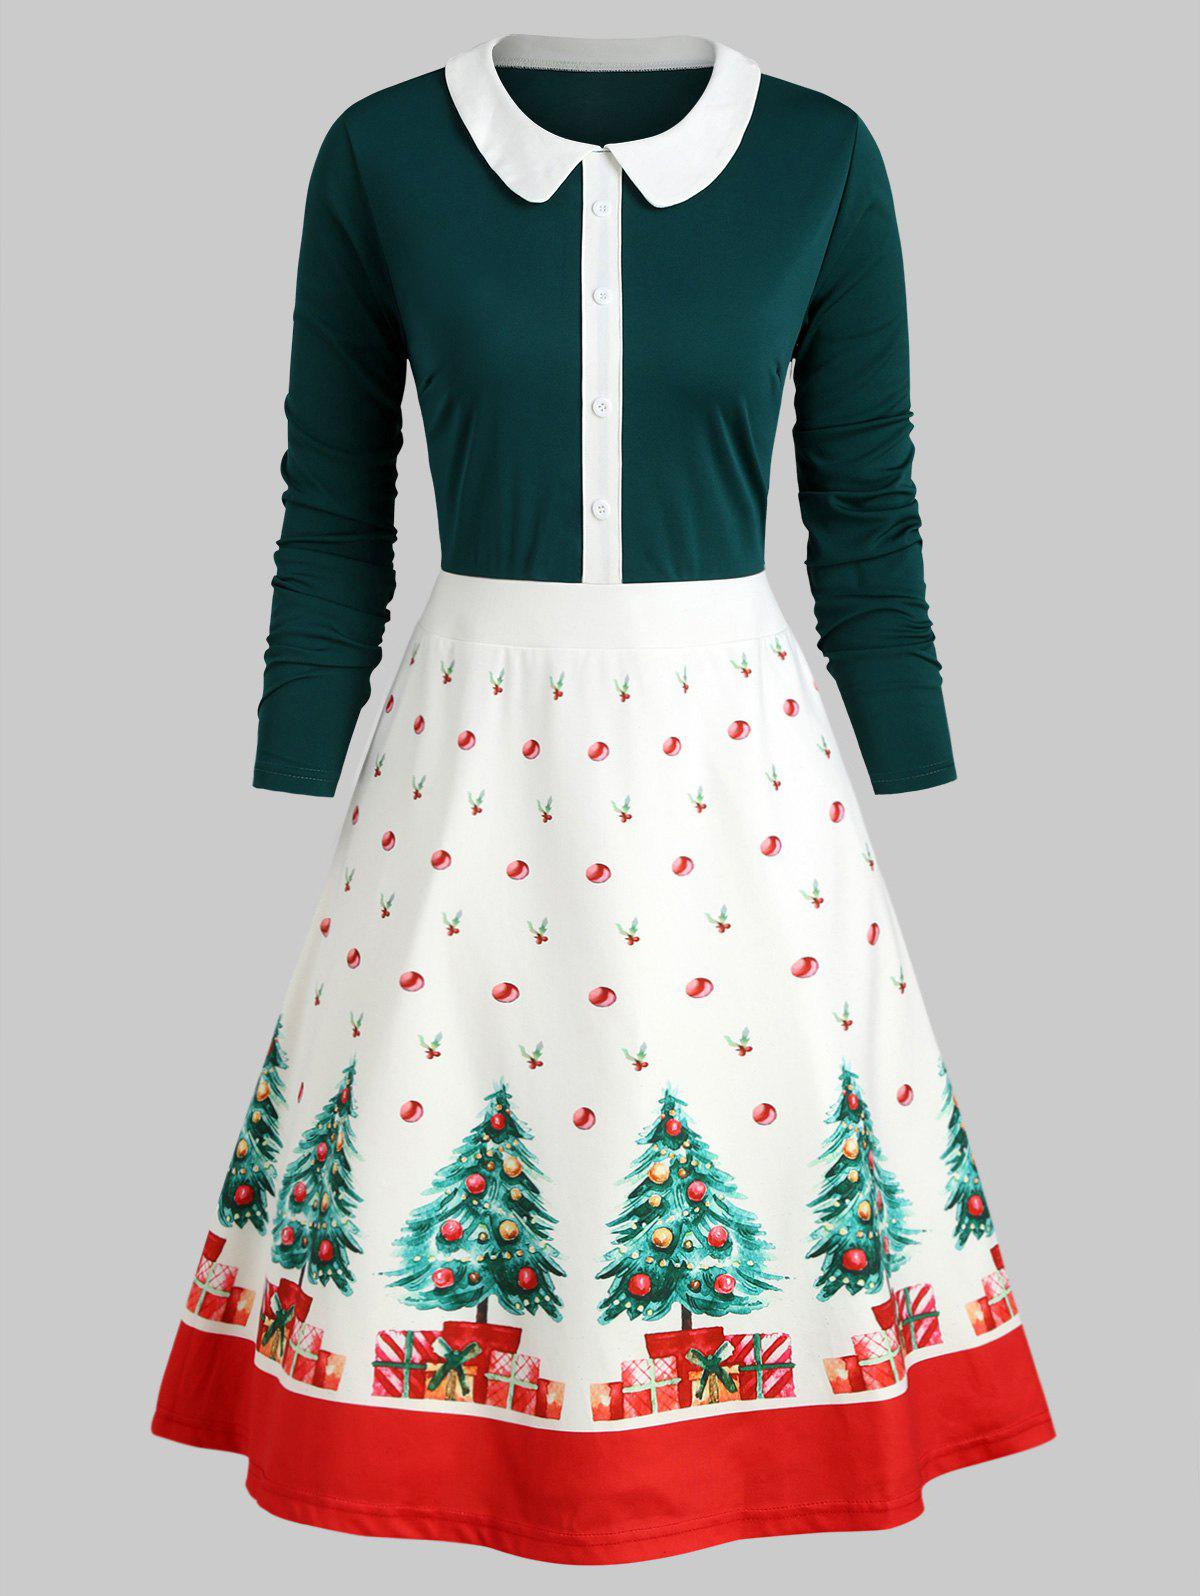 Christmas Tree Buttons Peter Pan Collar Dress - DARK GREEN XL